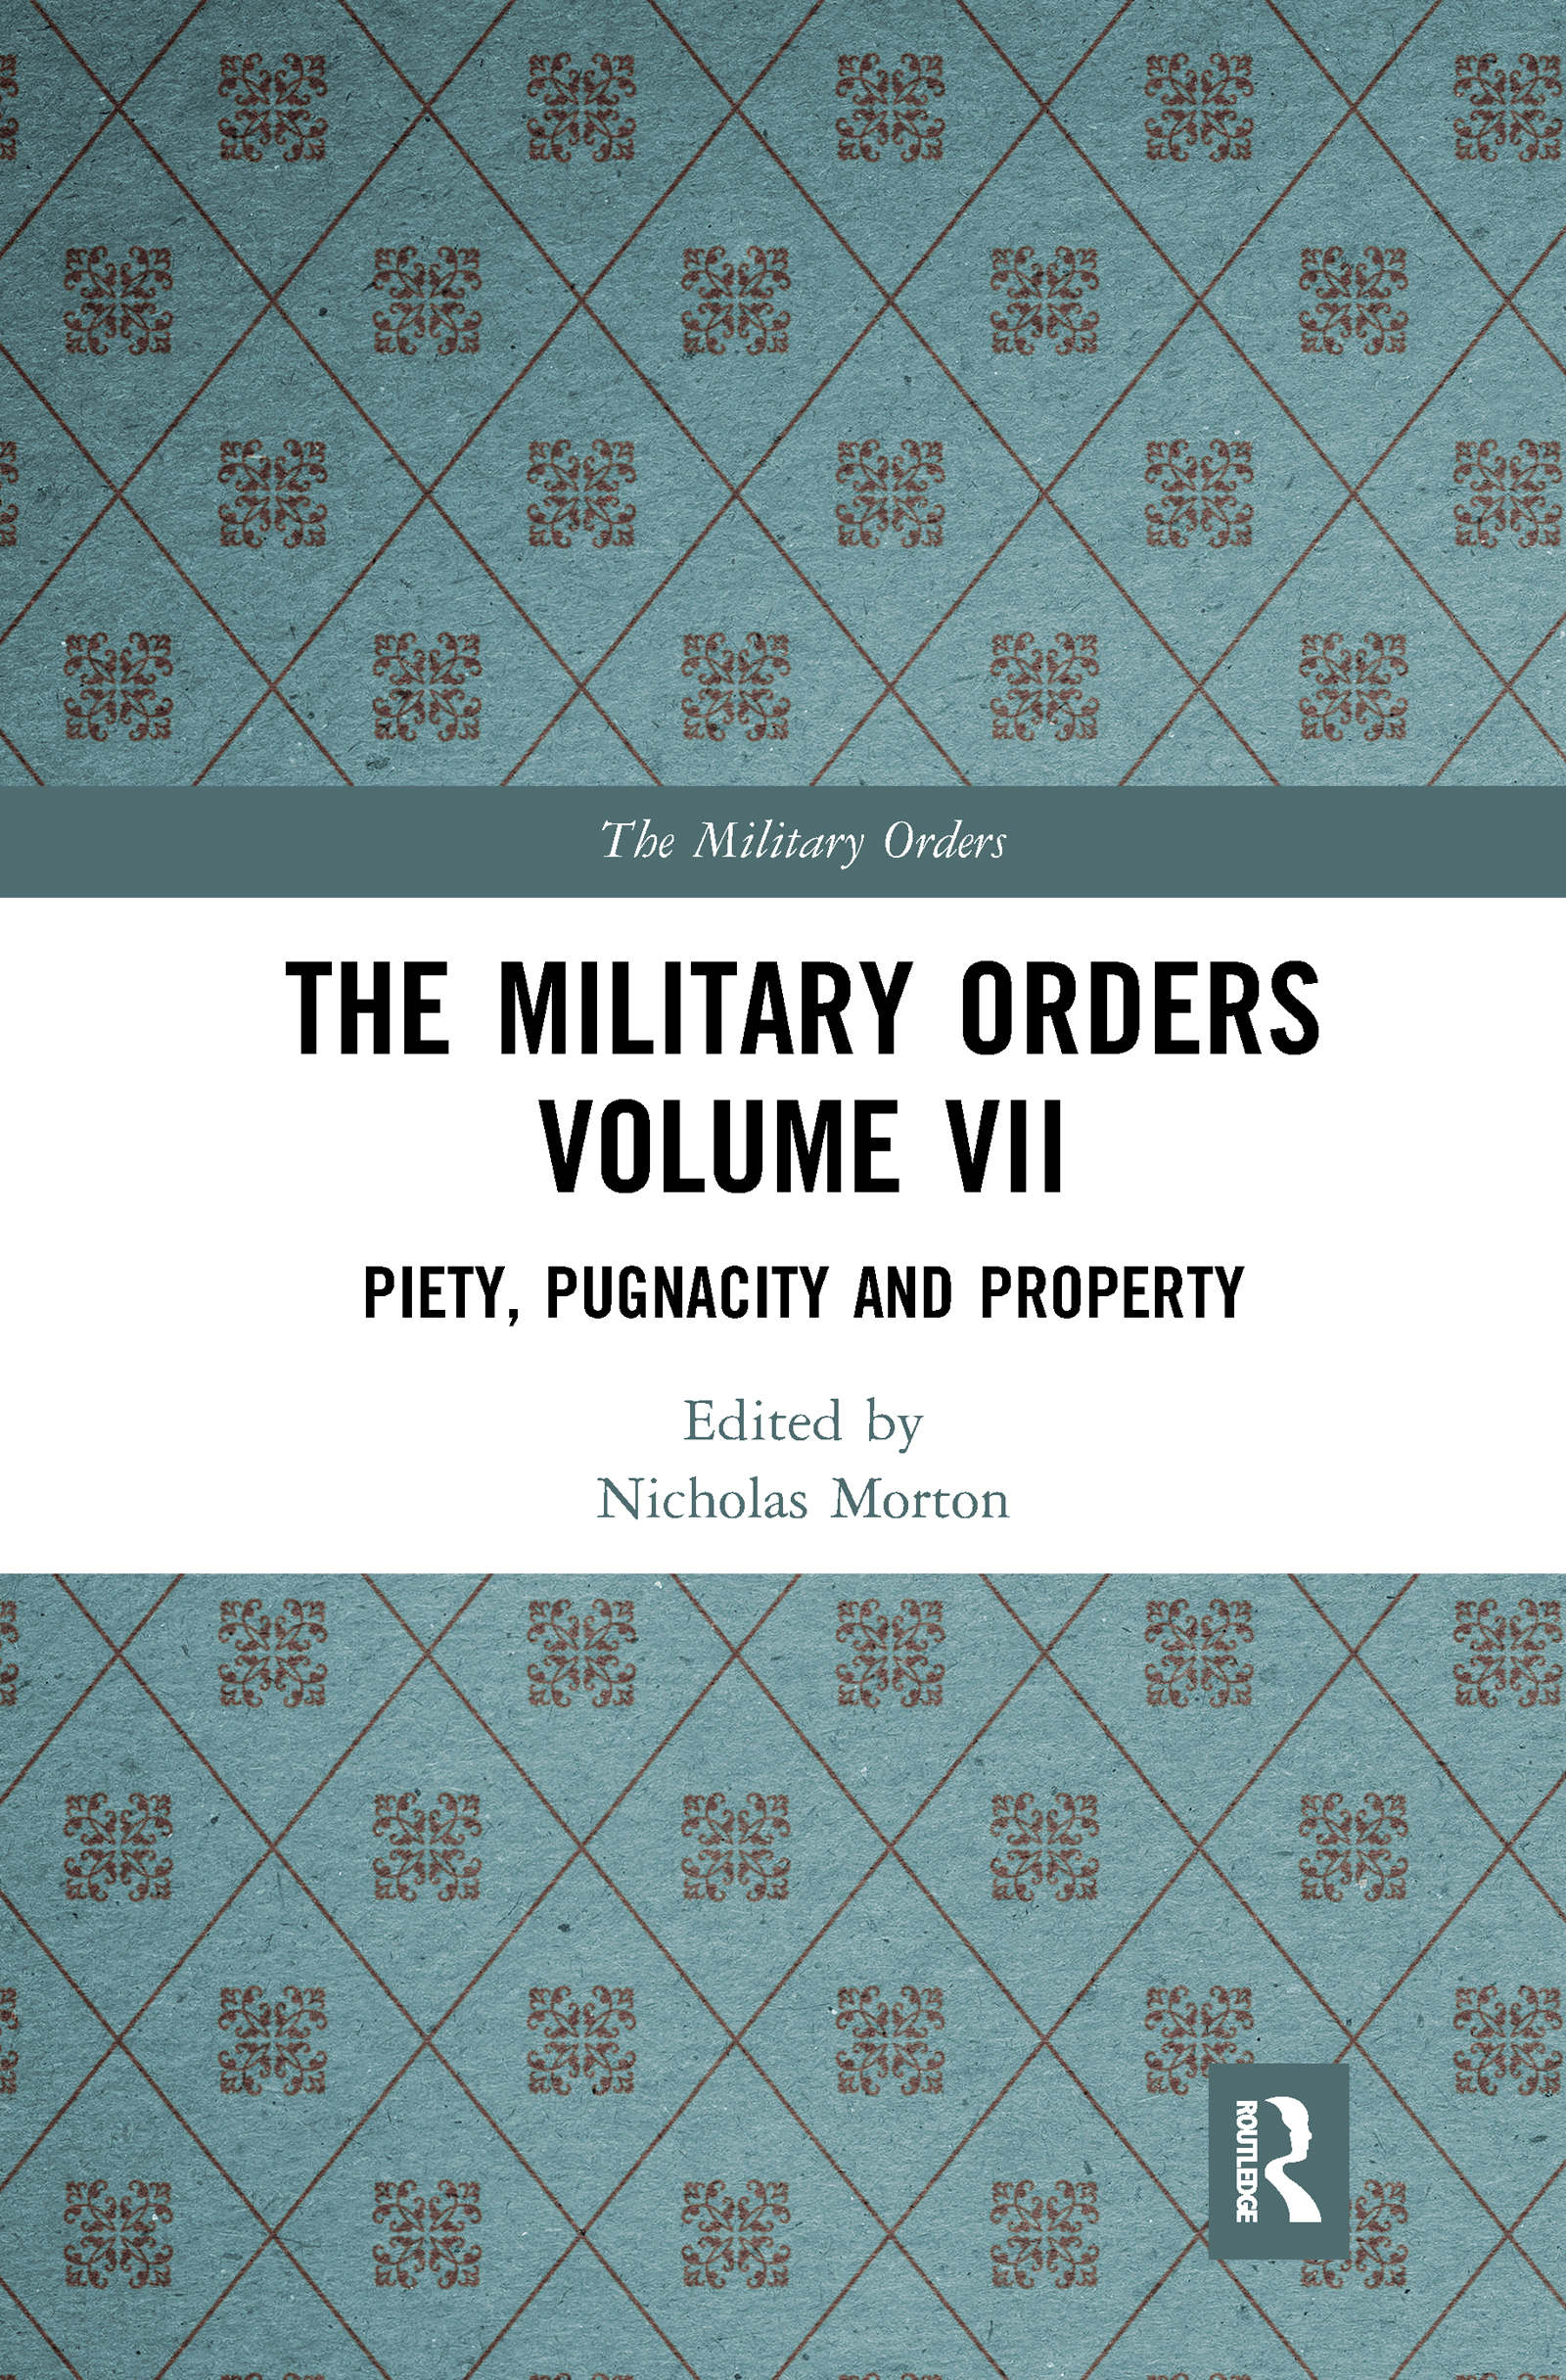 The Military Orders Volume VII